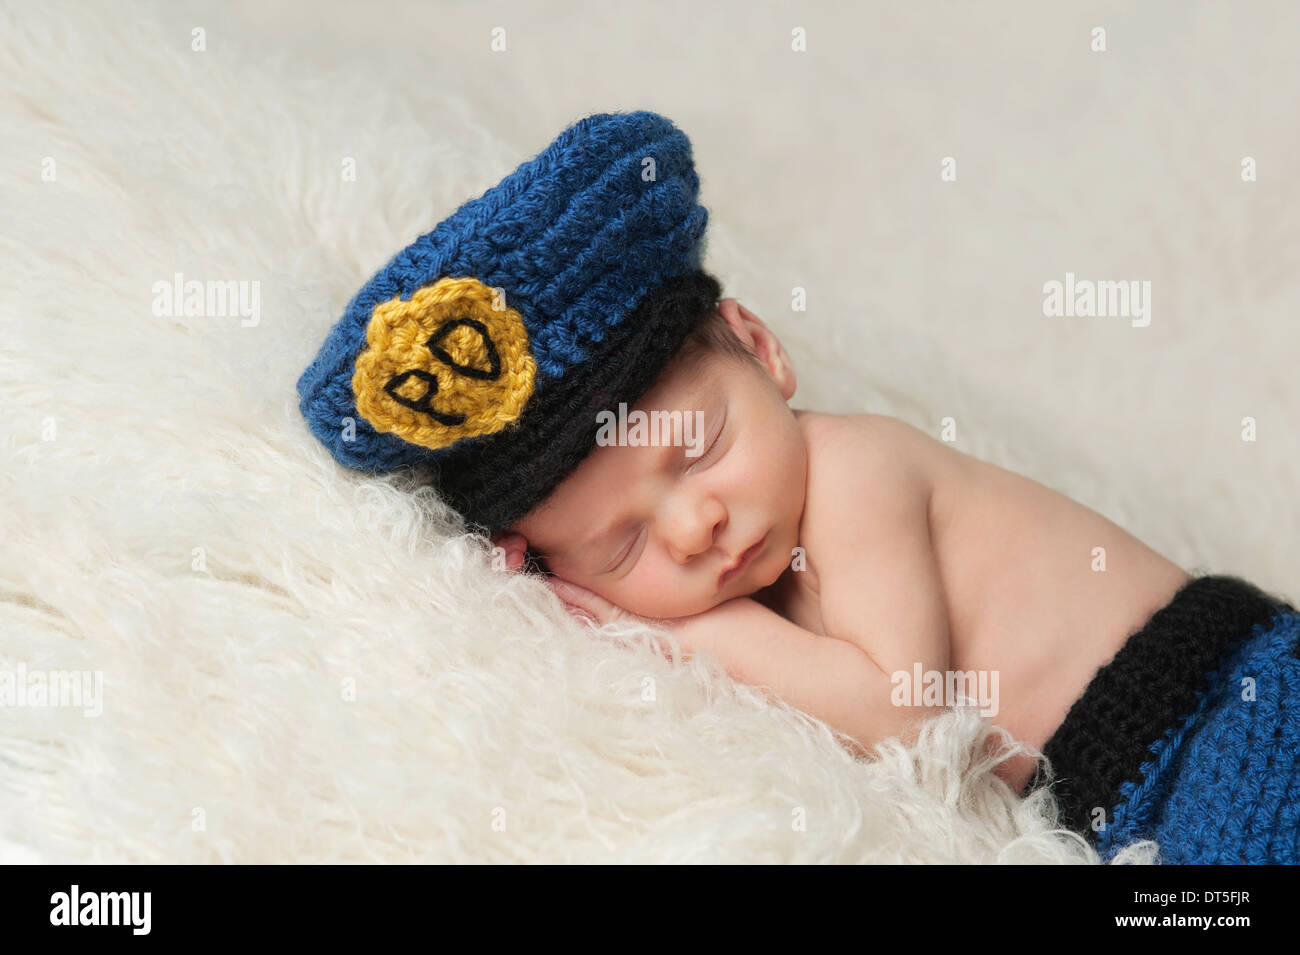 Sleeping 12 day old newborn baby boy wearing a blue and gold crocheted  police officer s hat. 70ab723b359c